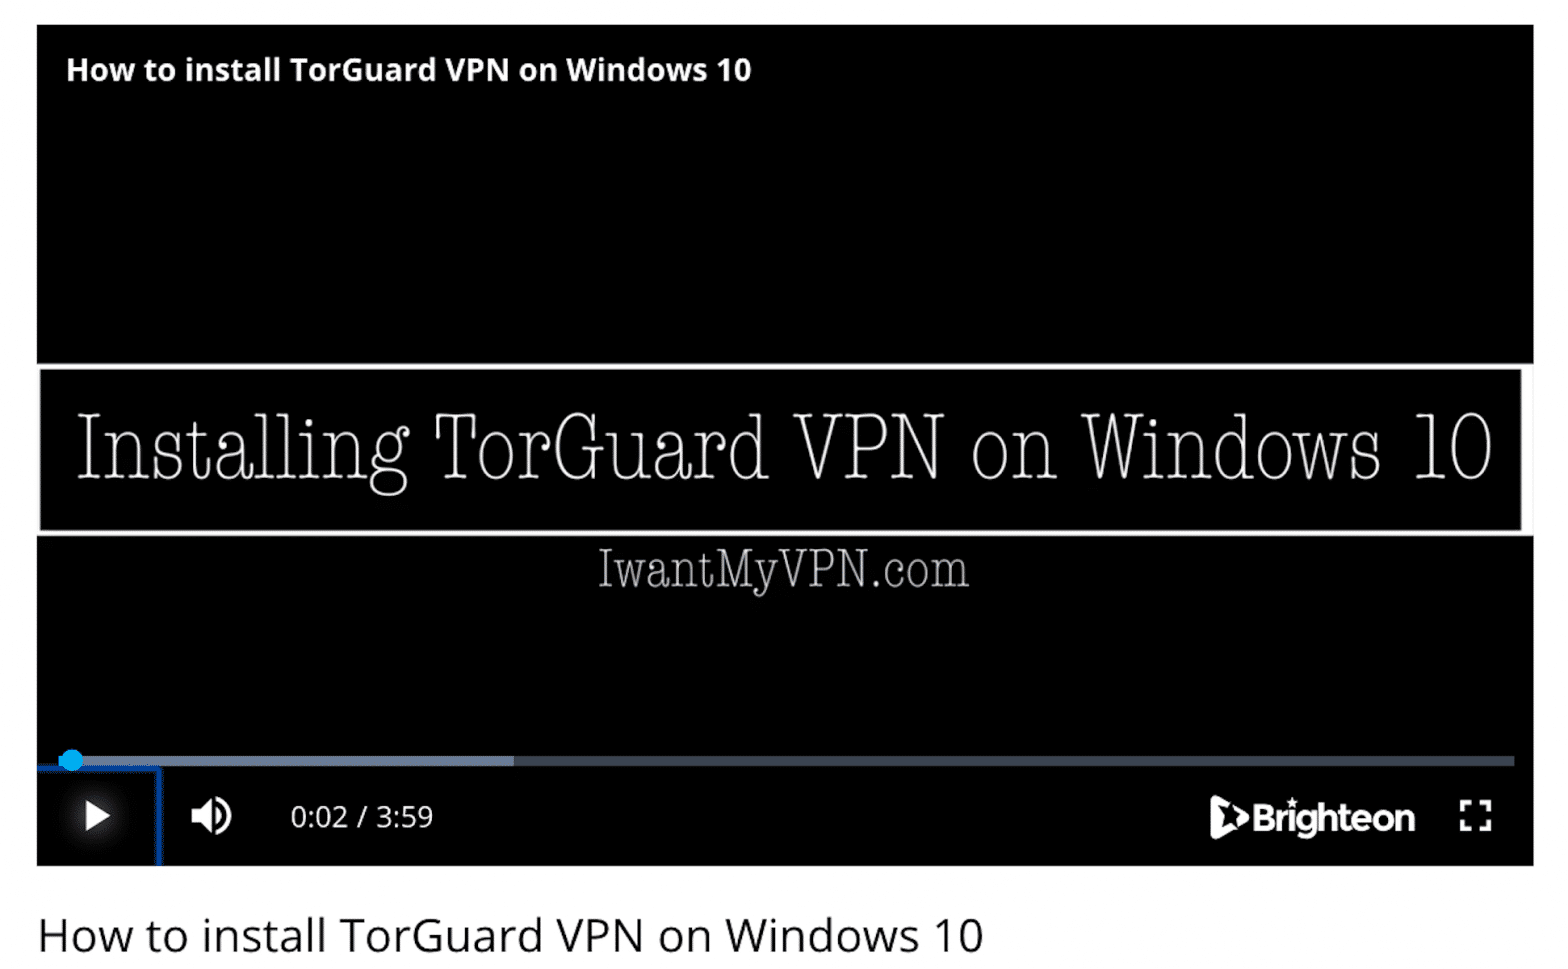 How to Install TorGuard VPN on Windows 10 [Video]